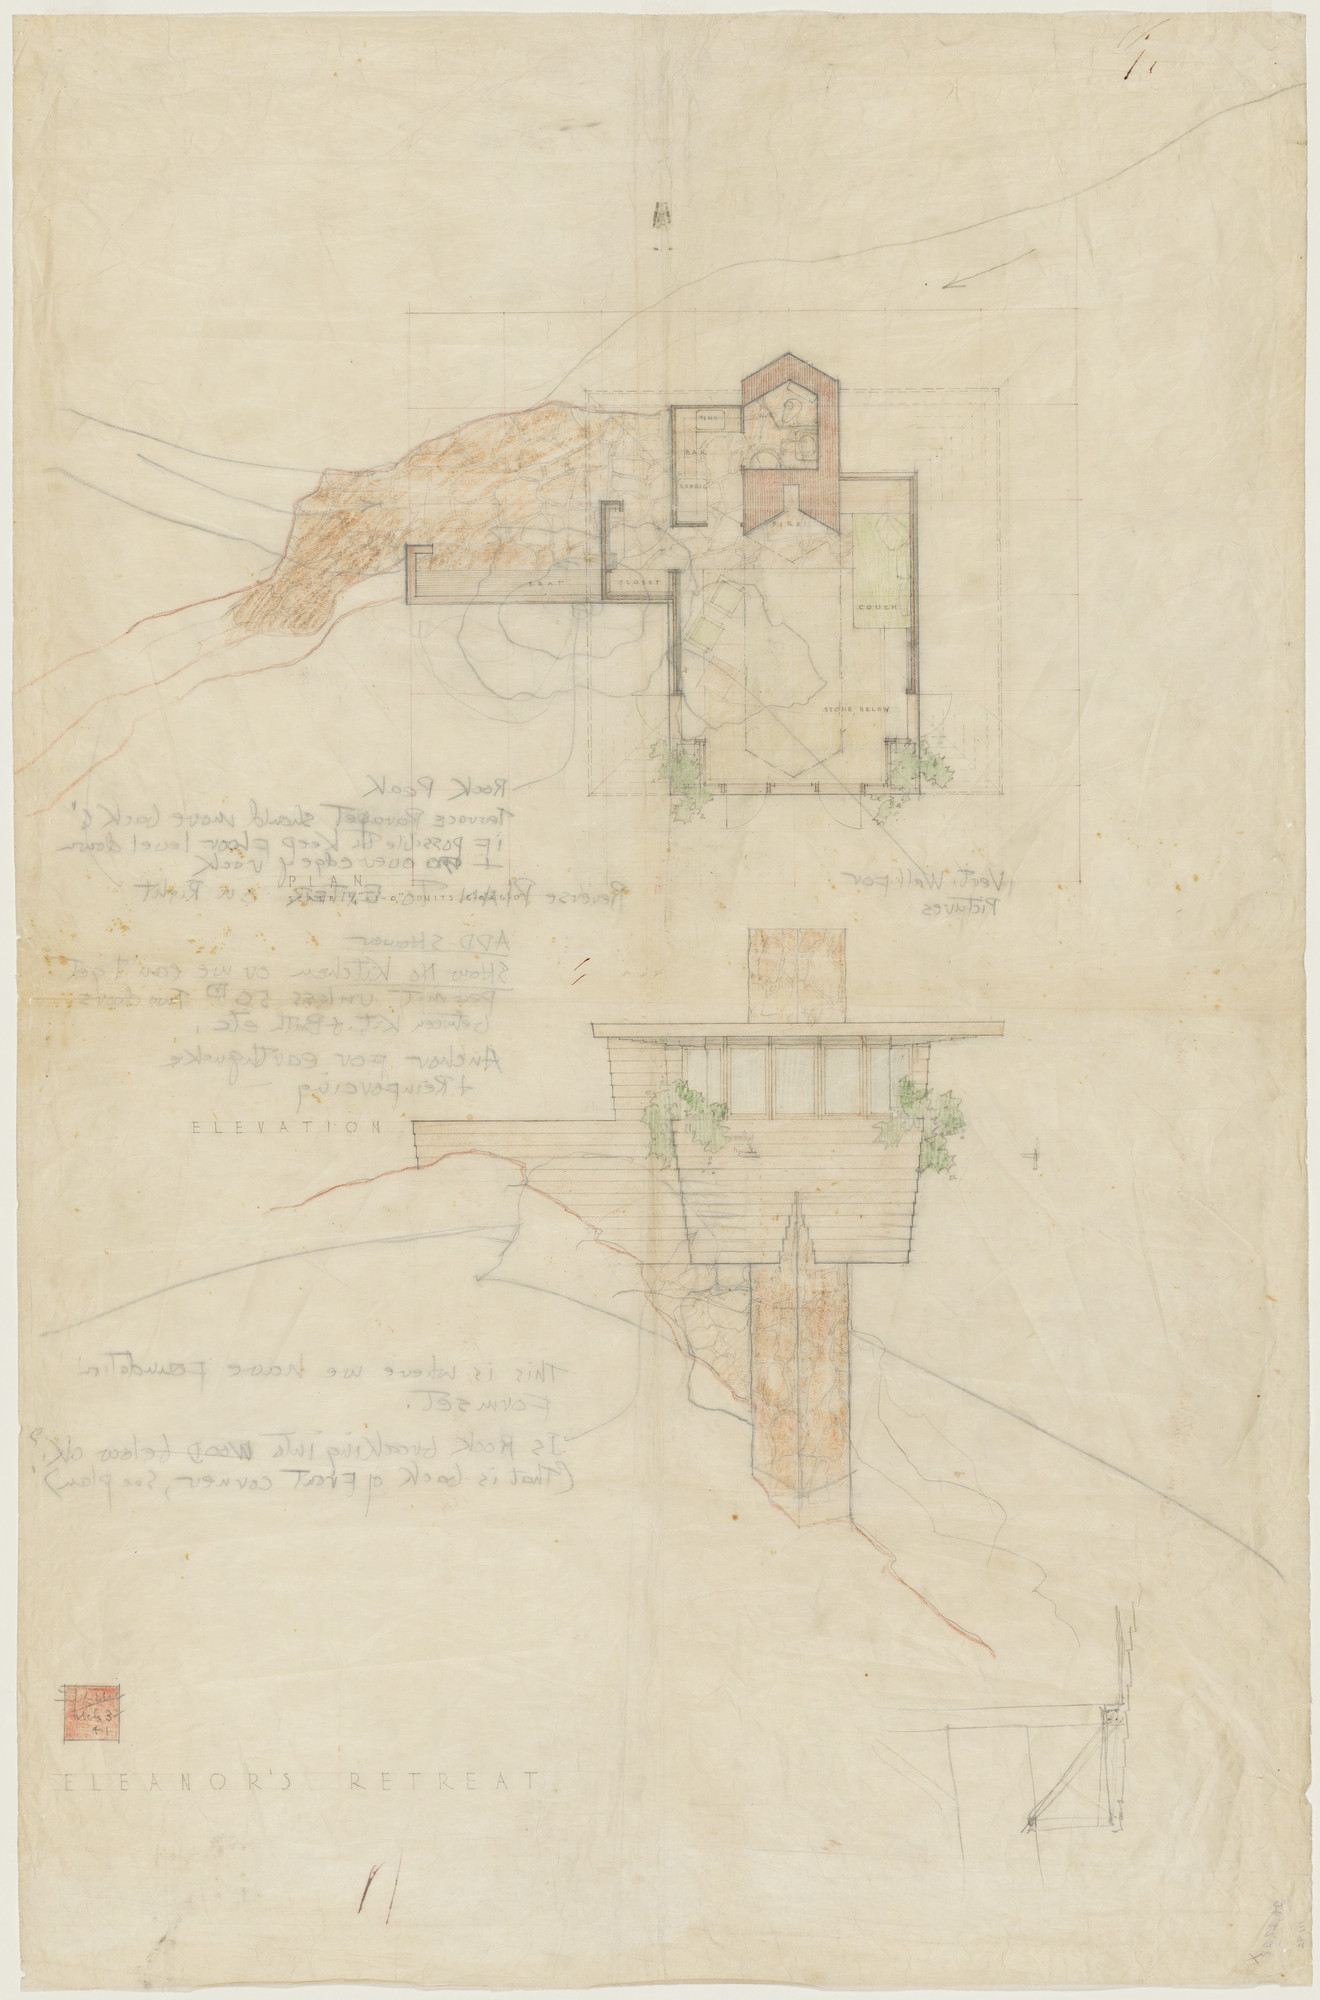 Frank Lloyd Wright. Arch Oboler Guest House (Eleanor's Retreat), project, Malibu, California, Plan and elevation. 1941